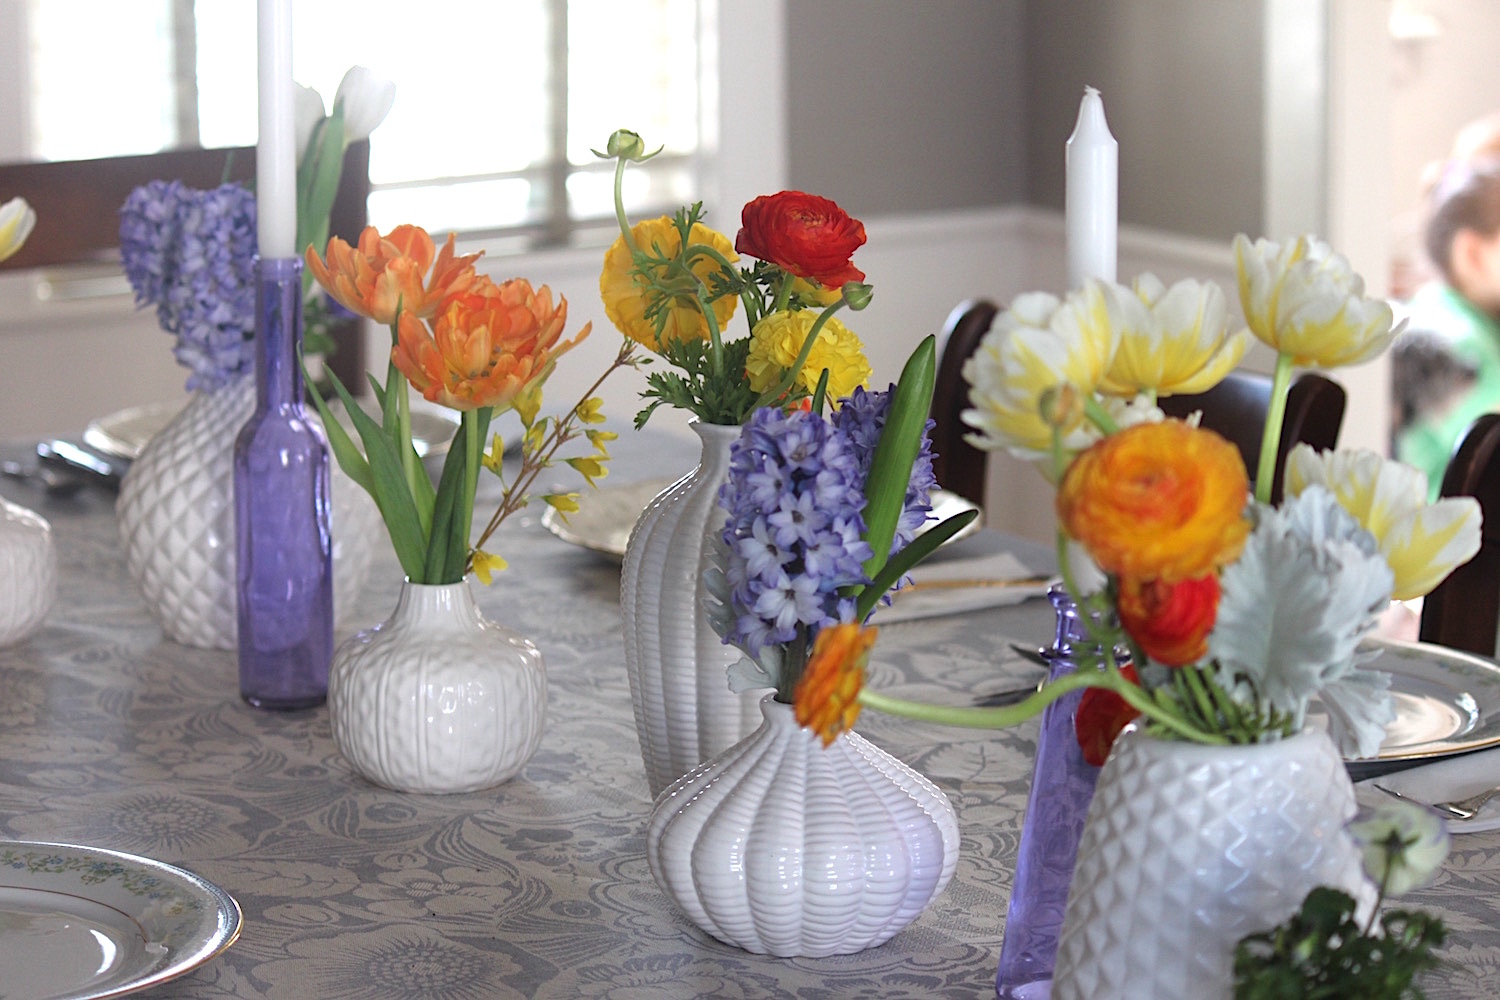 Easter-colorful-table-scape-use-this.jpg